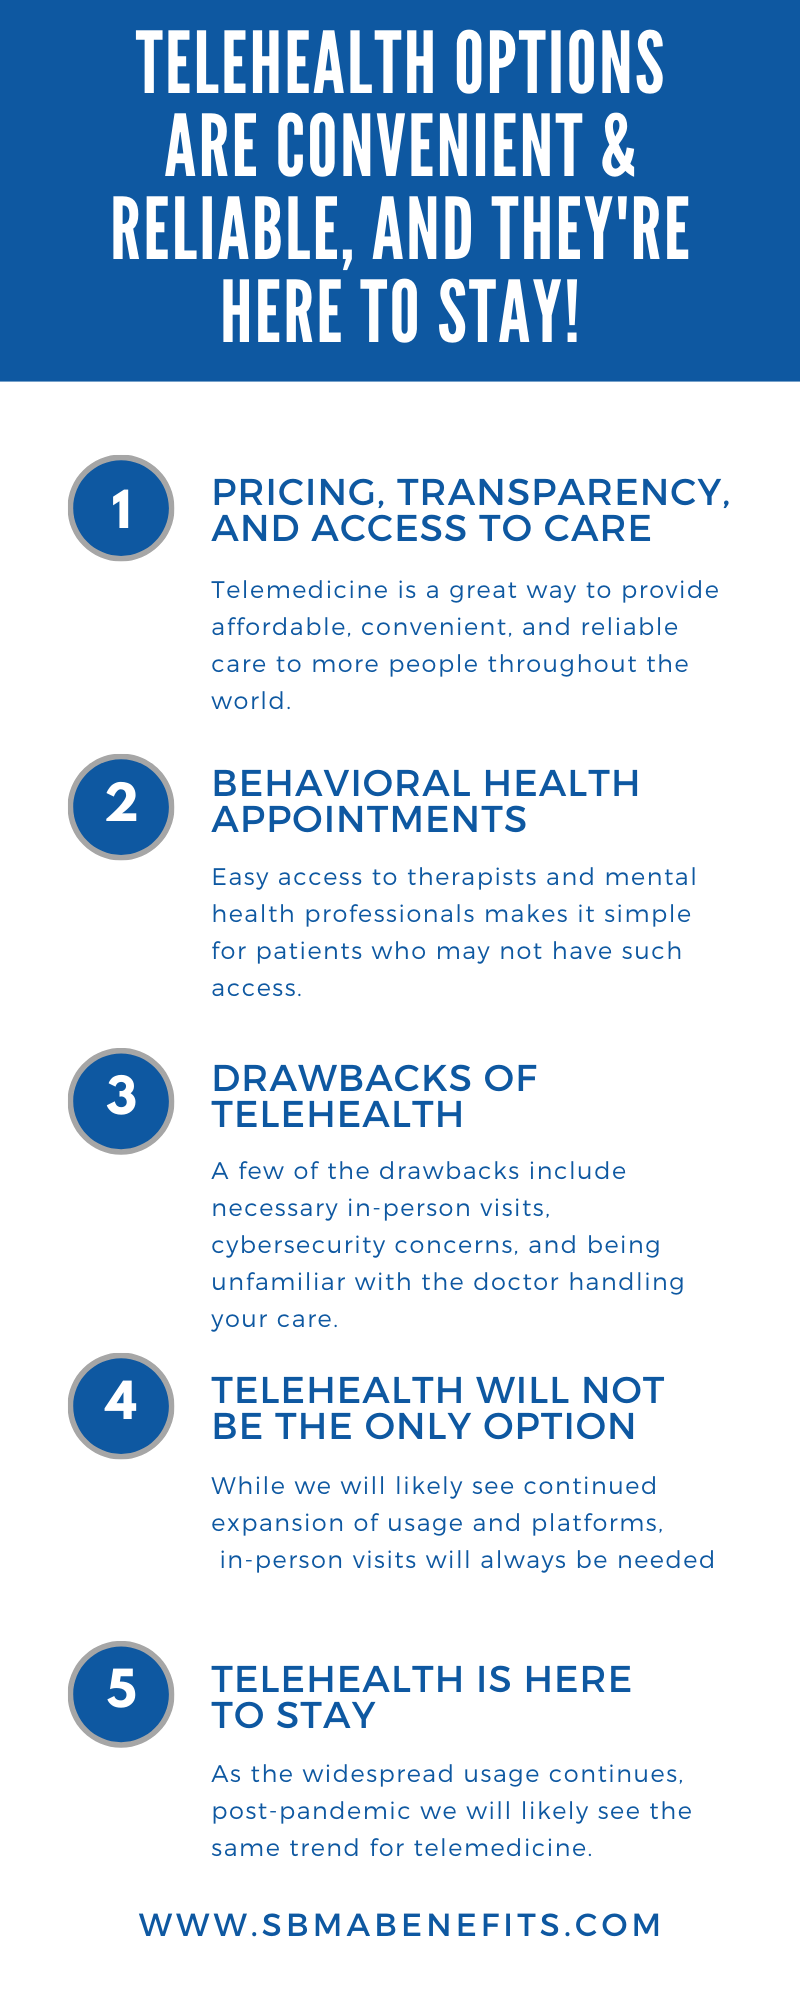 Telehealth is Convenient Reliable and Here To Stay!